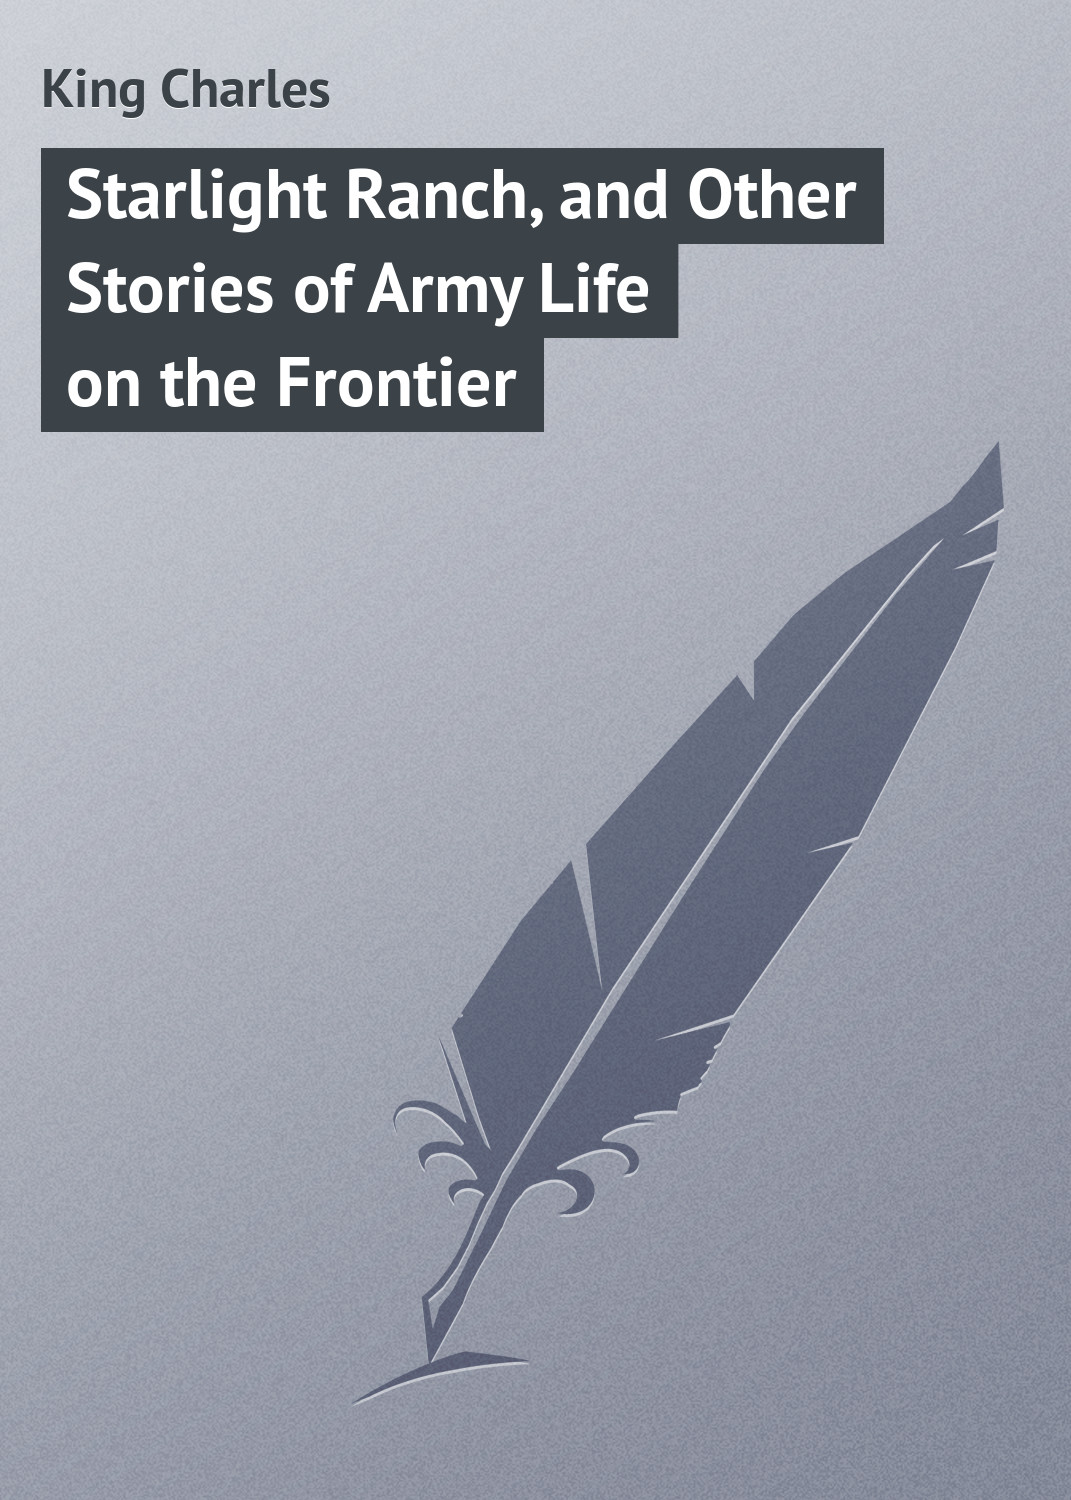 King Charles Starlight Ranch, and Other Stories of Army Life on the Frontier лондон дж любовь к жизни и другие рассказы love of life and other stories cd